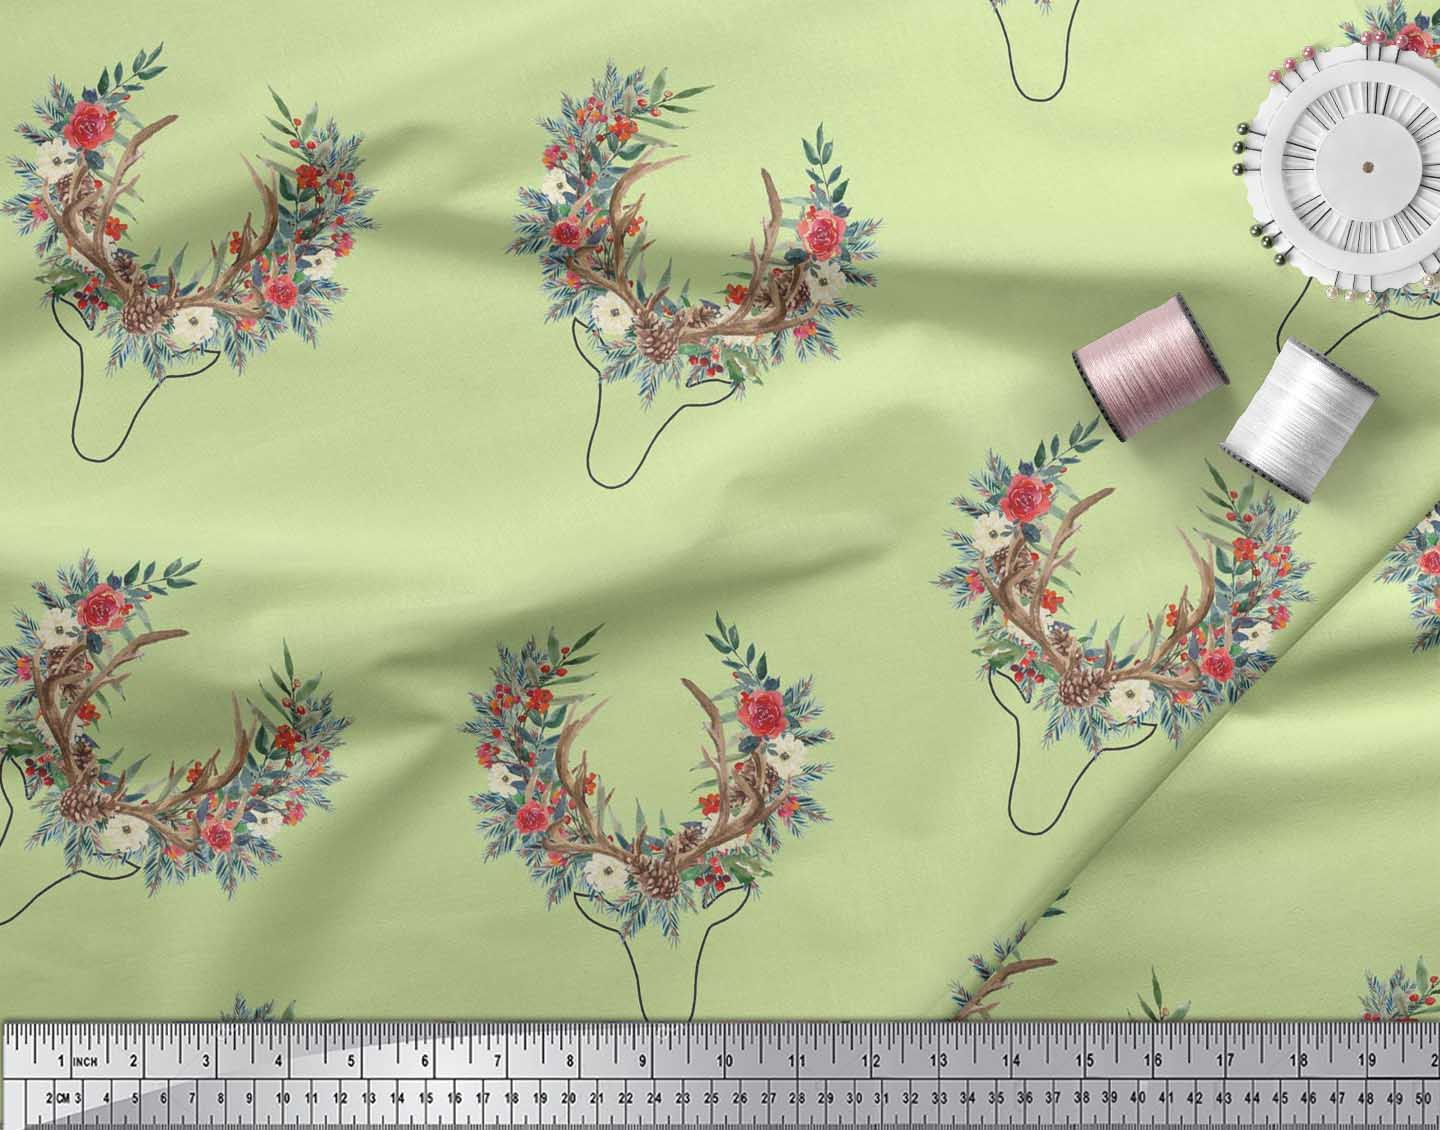 Soimoi-Beige-Cotton-Poplin-Fabric-Antler-amp-Half-Wreath-Floral-Decor-7nl thumbnail 3